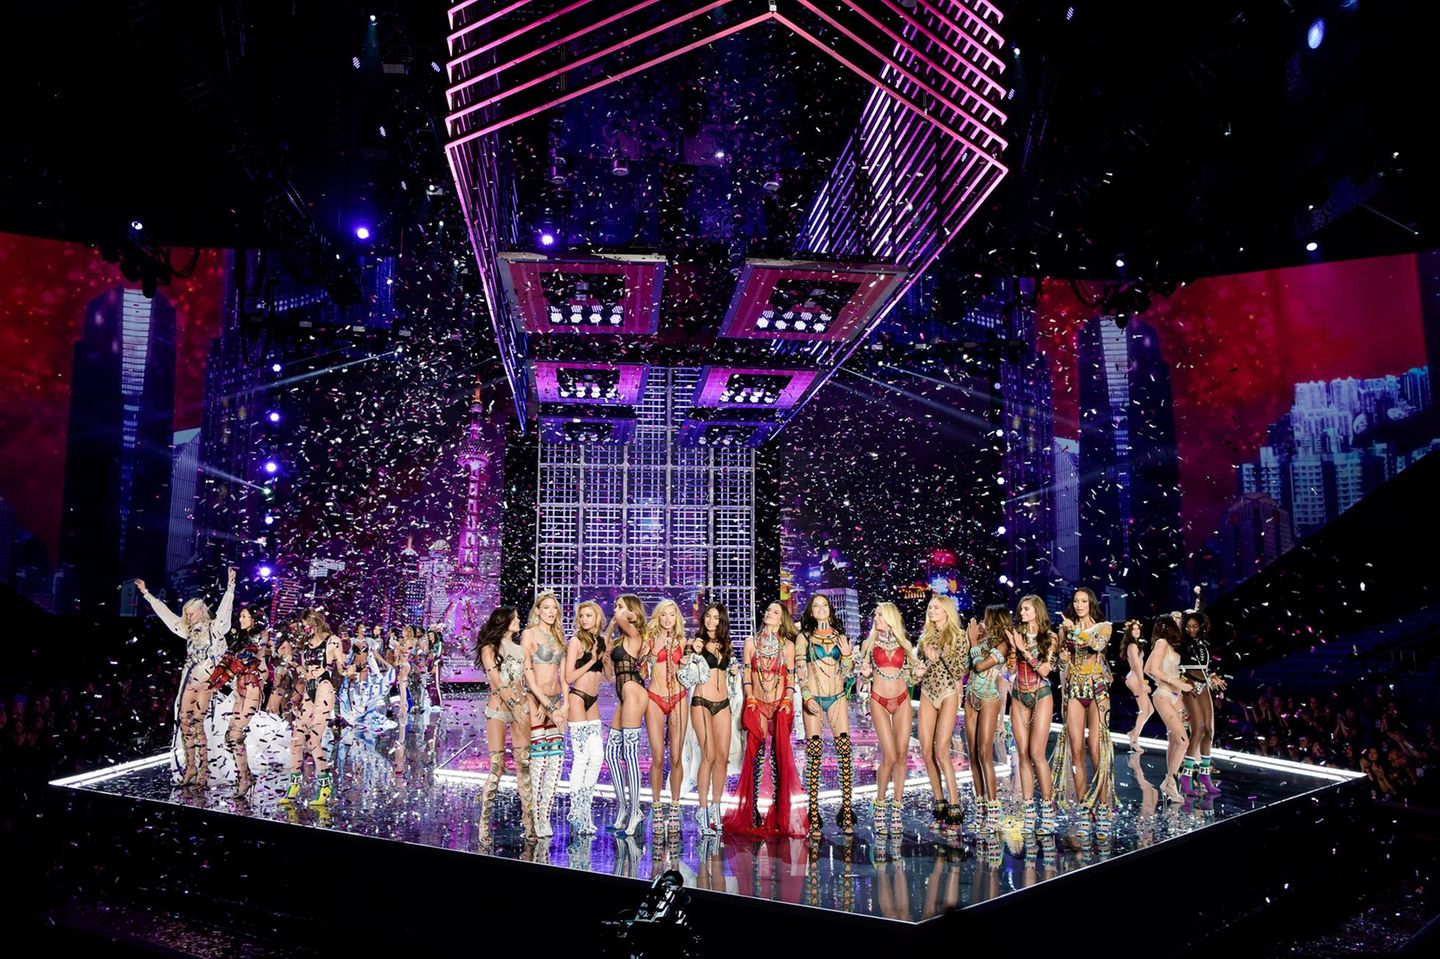 Finale der Victoria's Secret Fashion Show 2017 in Shanghai